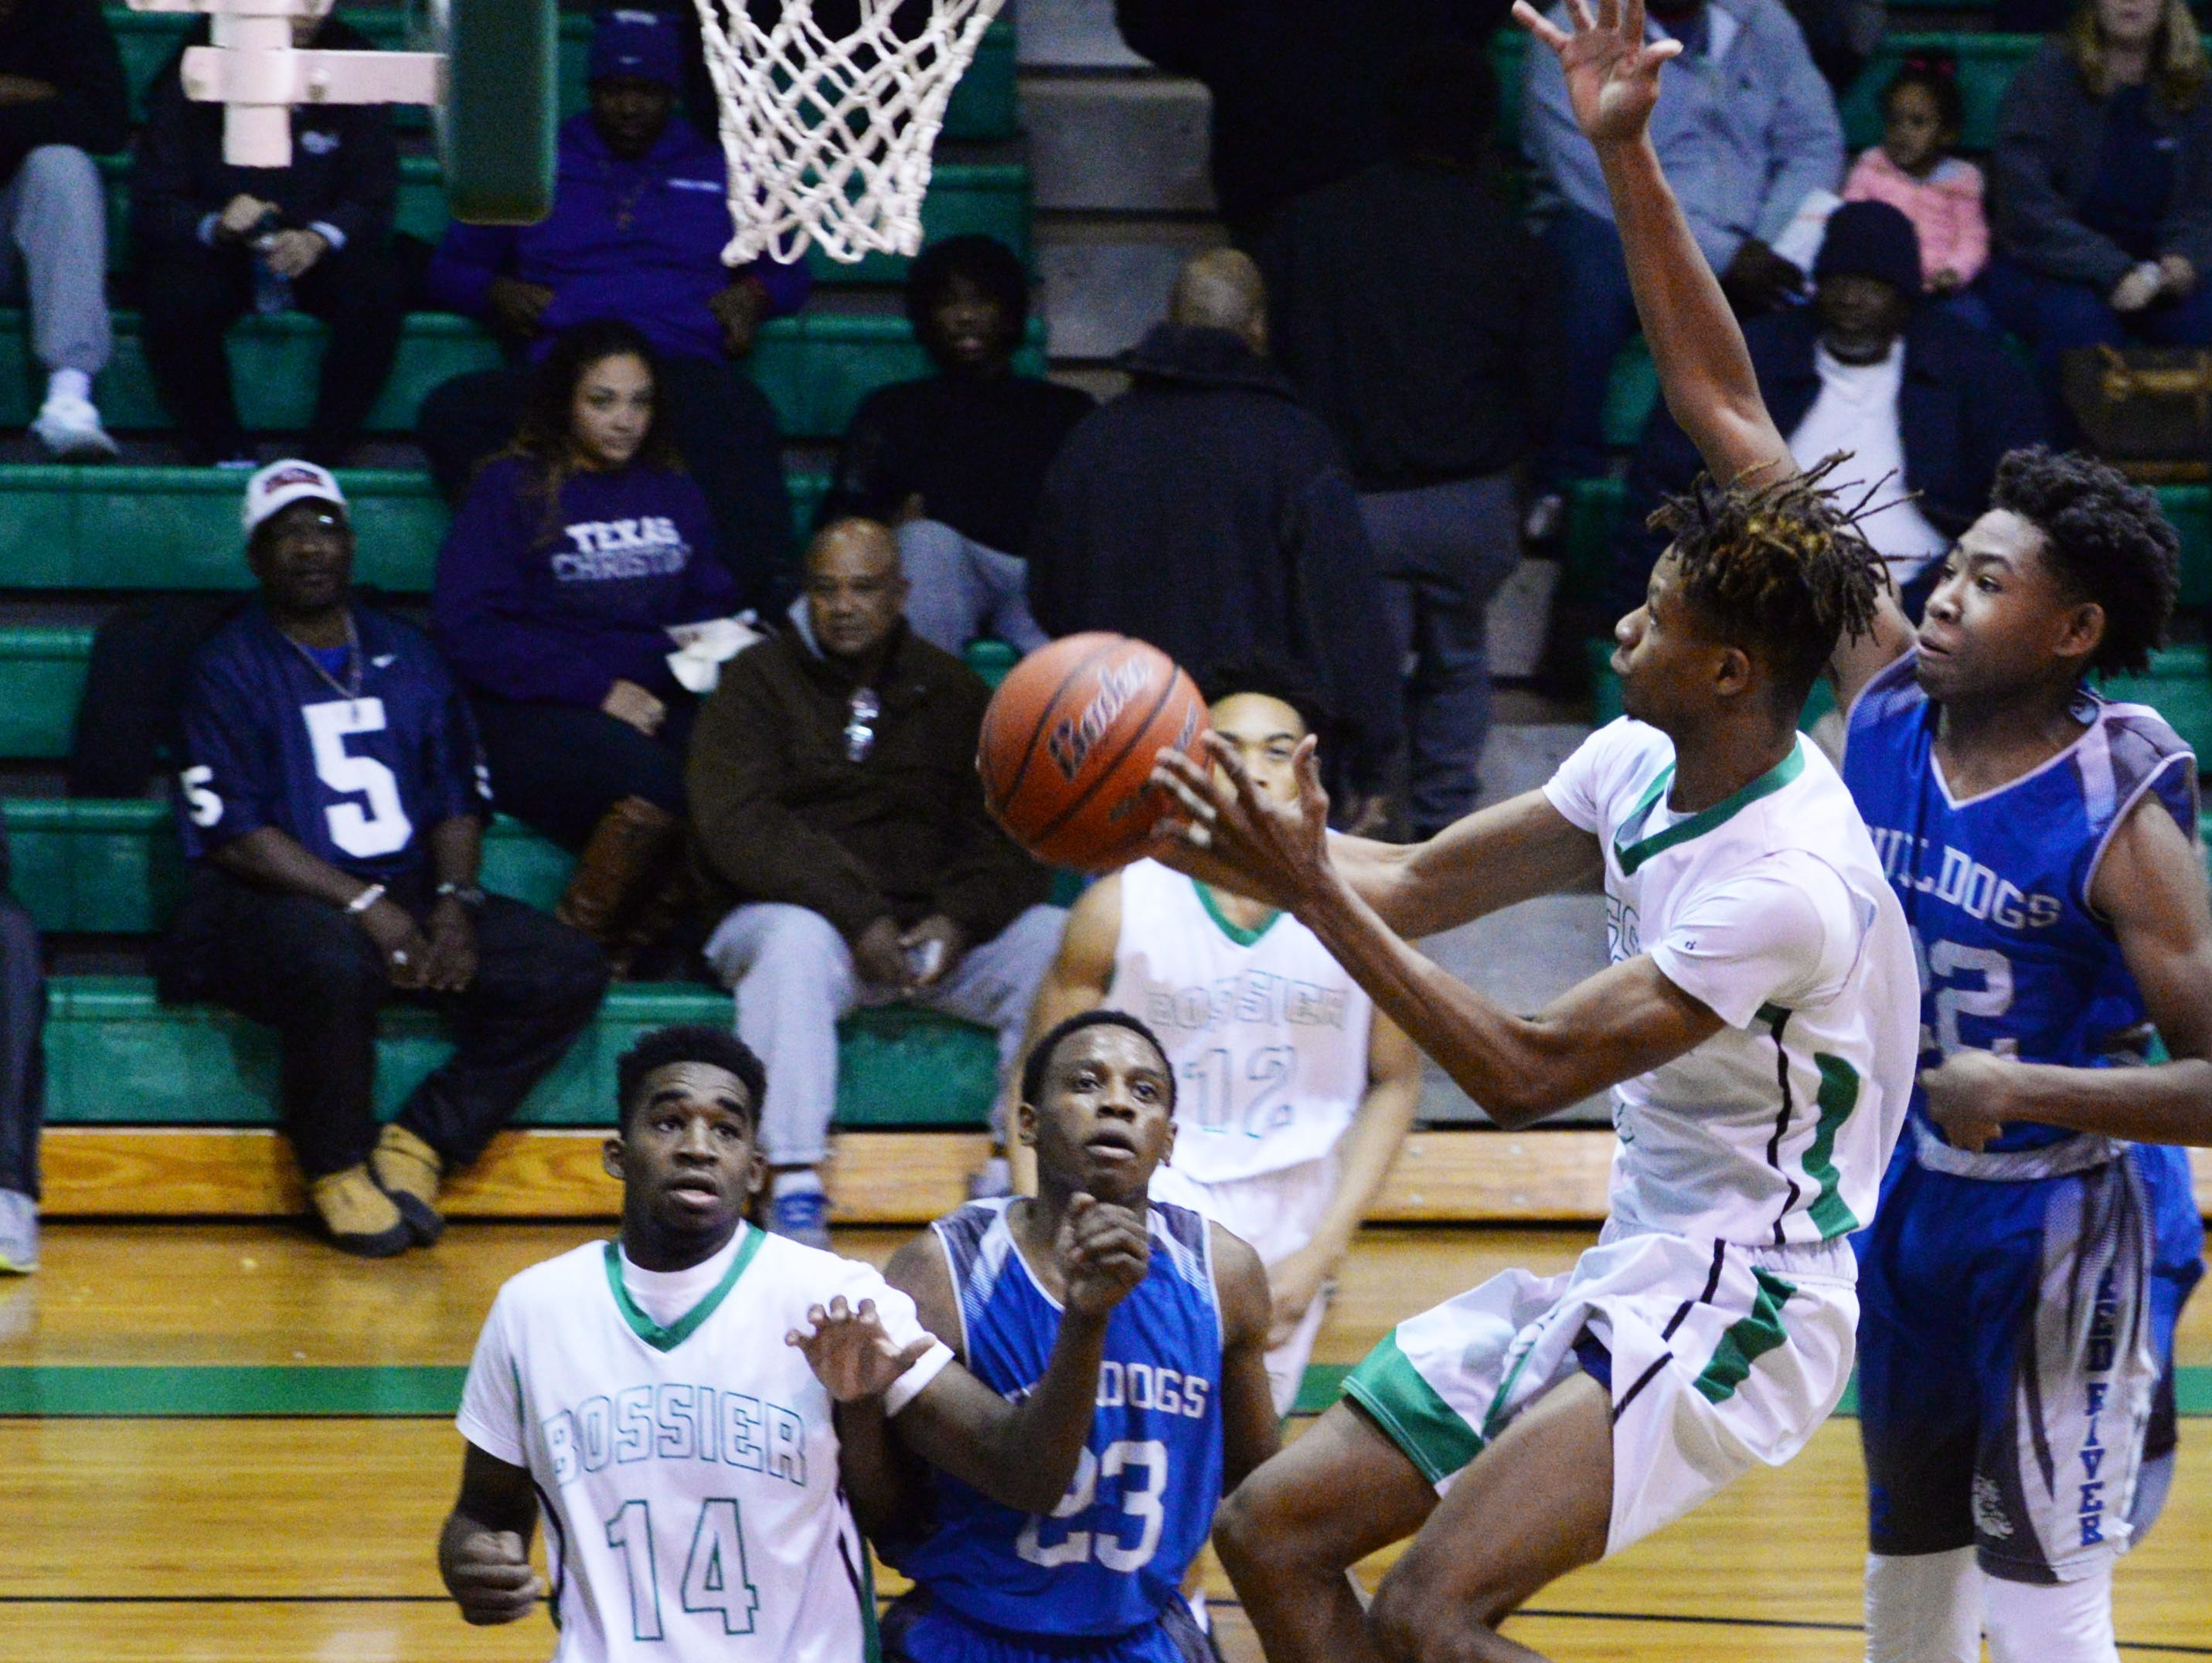 Bossier's TyBo Wimberly tries to get the ball in the basket during their game against Union Parish Friday evening.